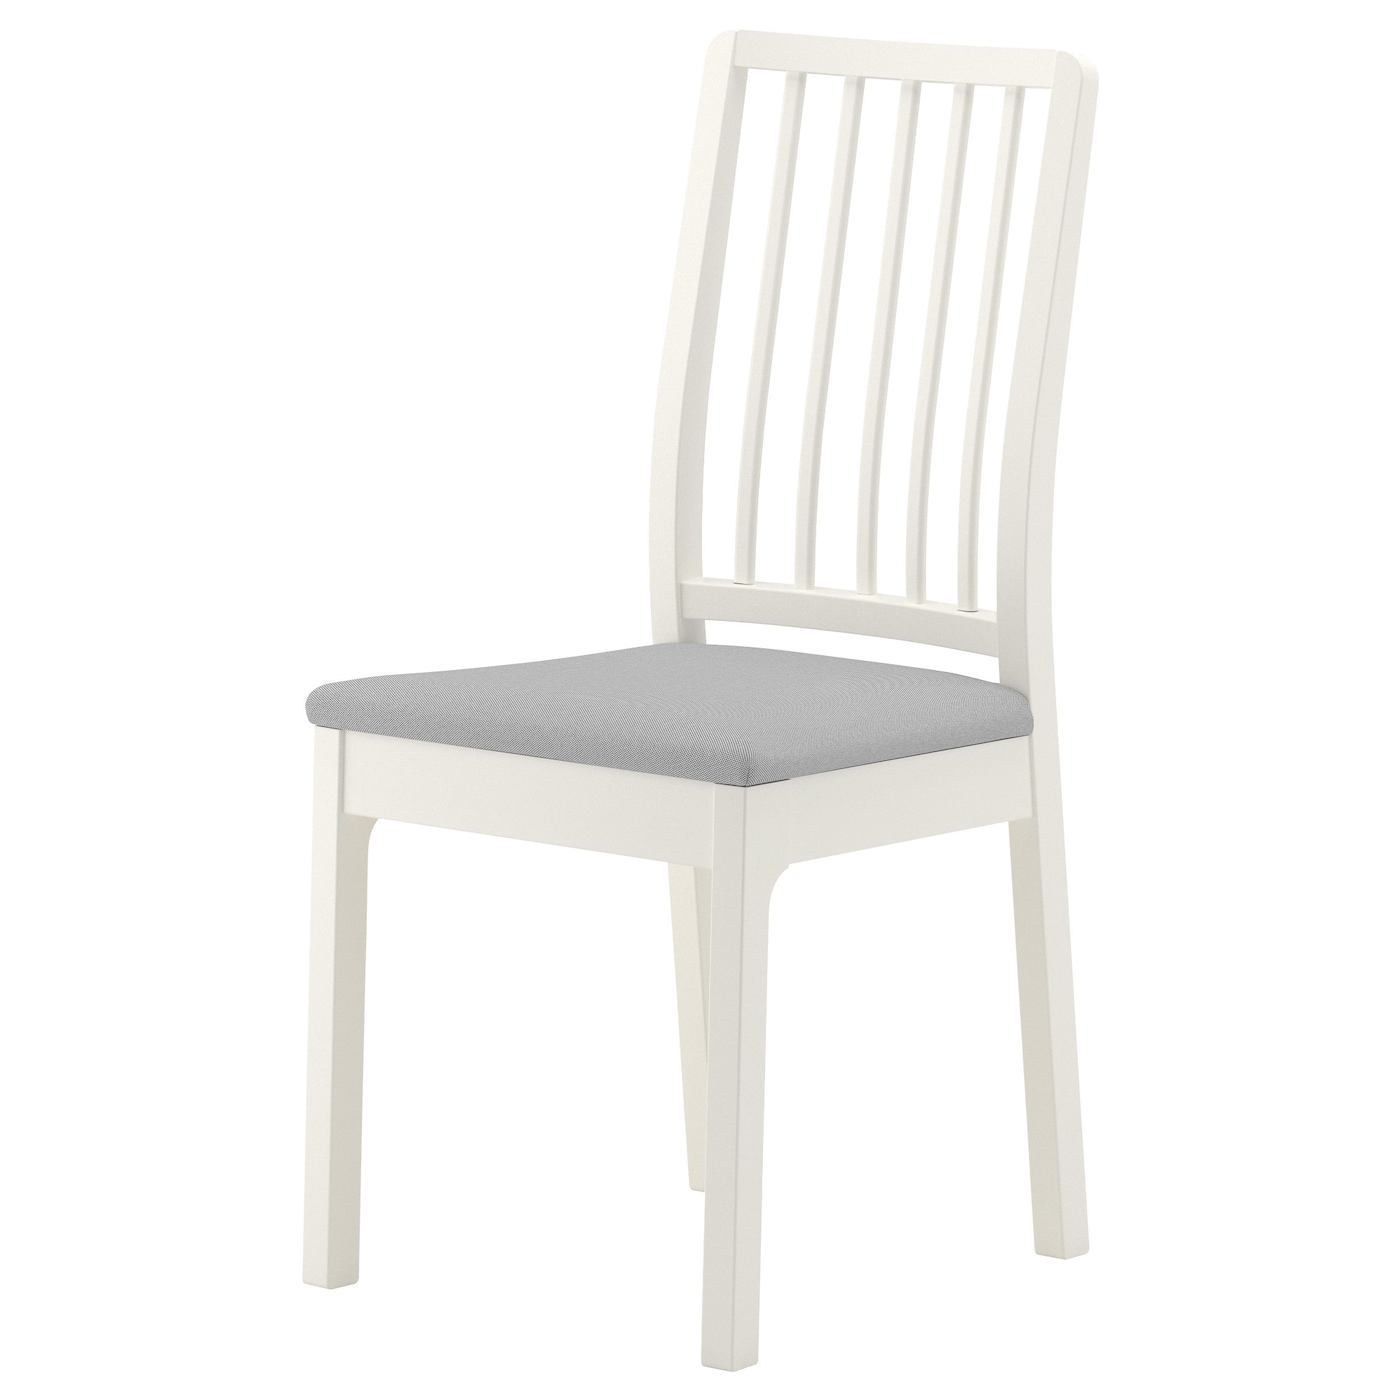 Chairs upholstered foldable dining chairs ikea - Ikea chaise salle a manger ...